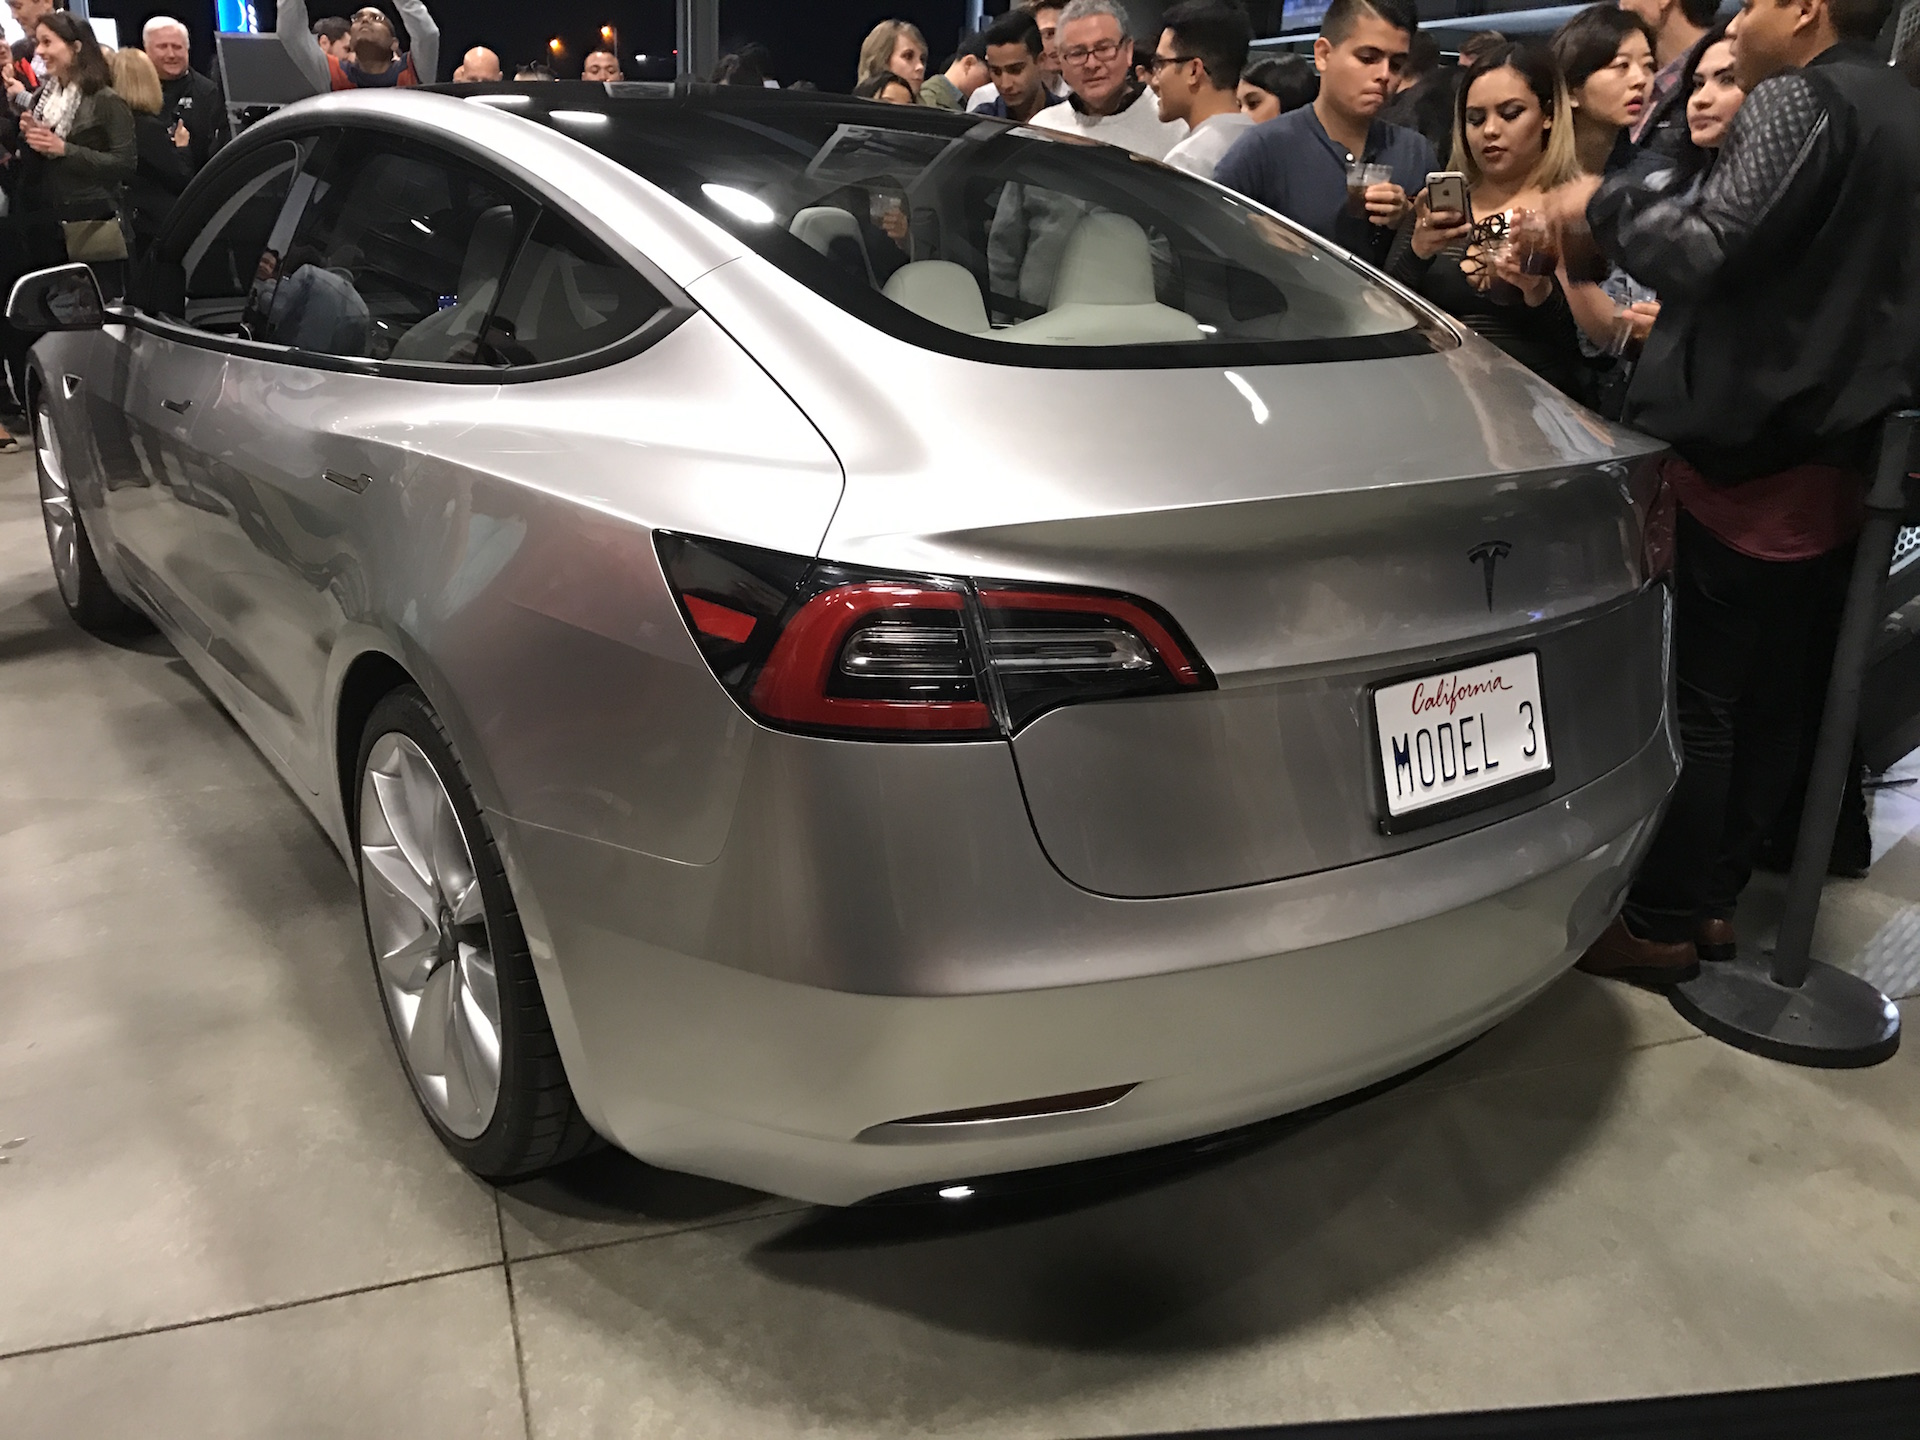 silver-tesla-model-3-trunk-employee-party